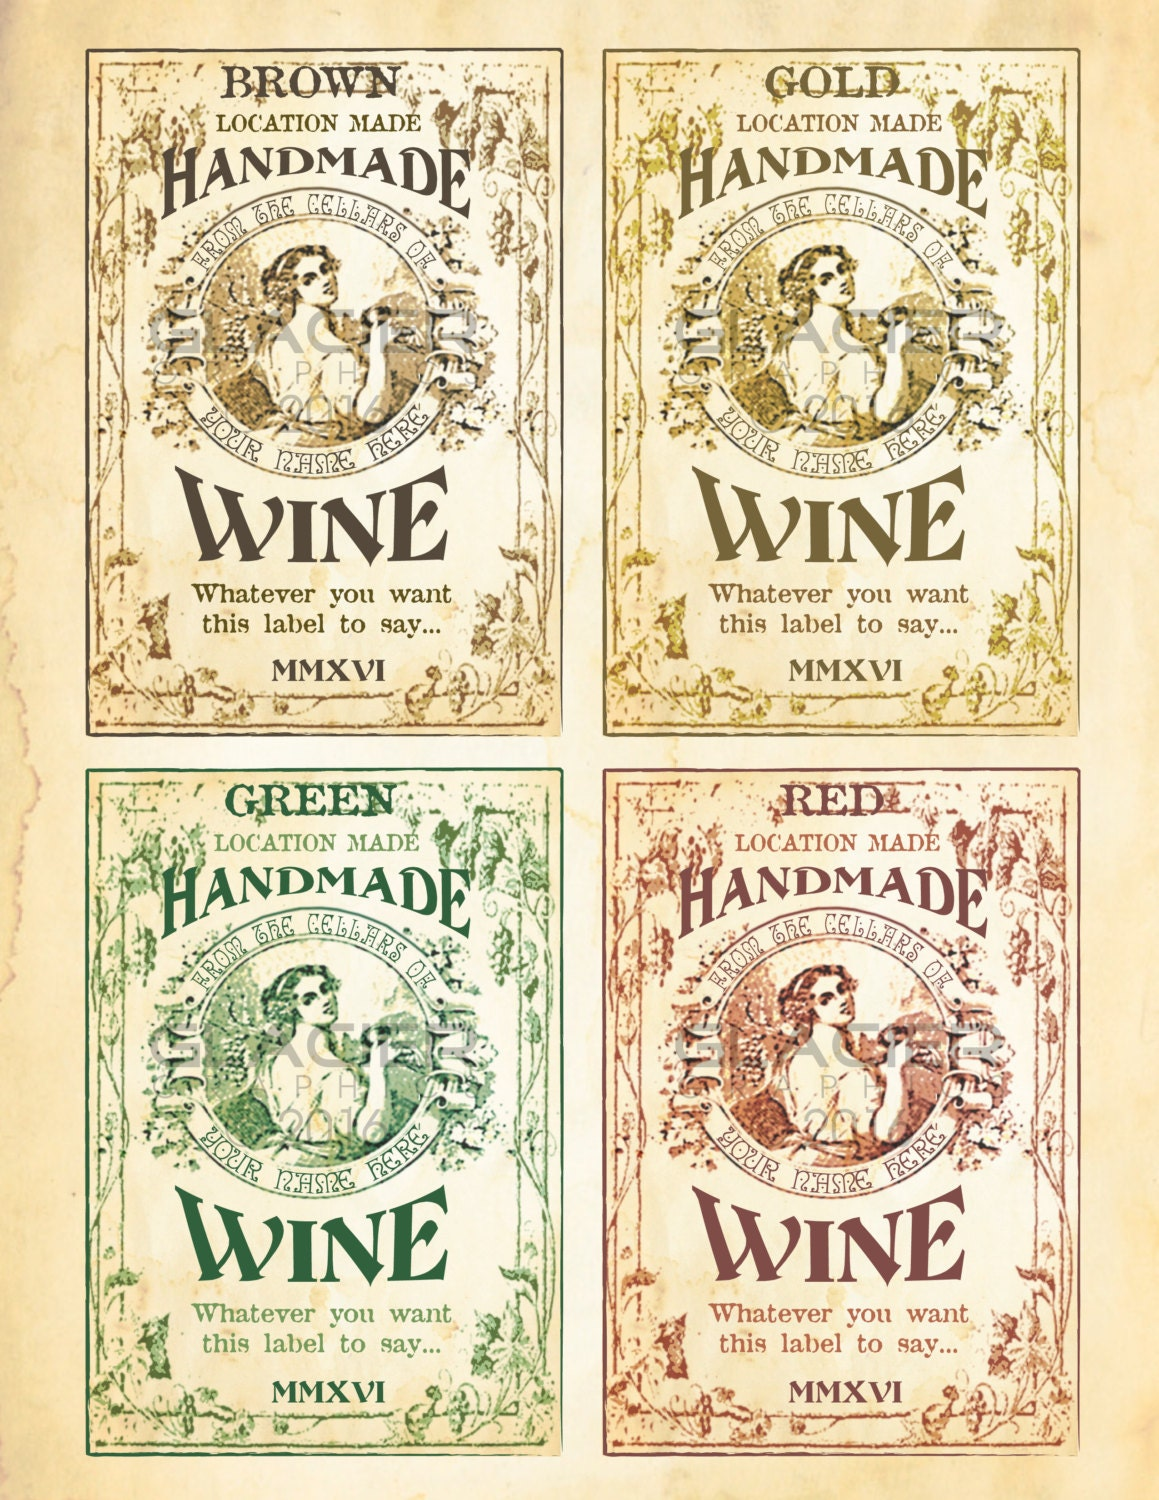 It is an image of Sassy Wine Bottles and Labels